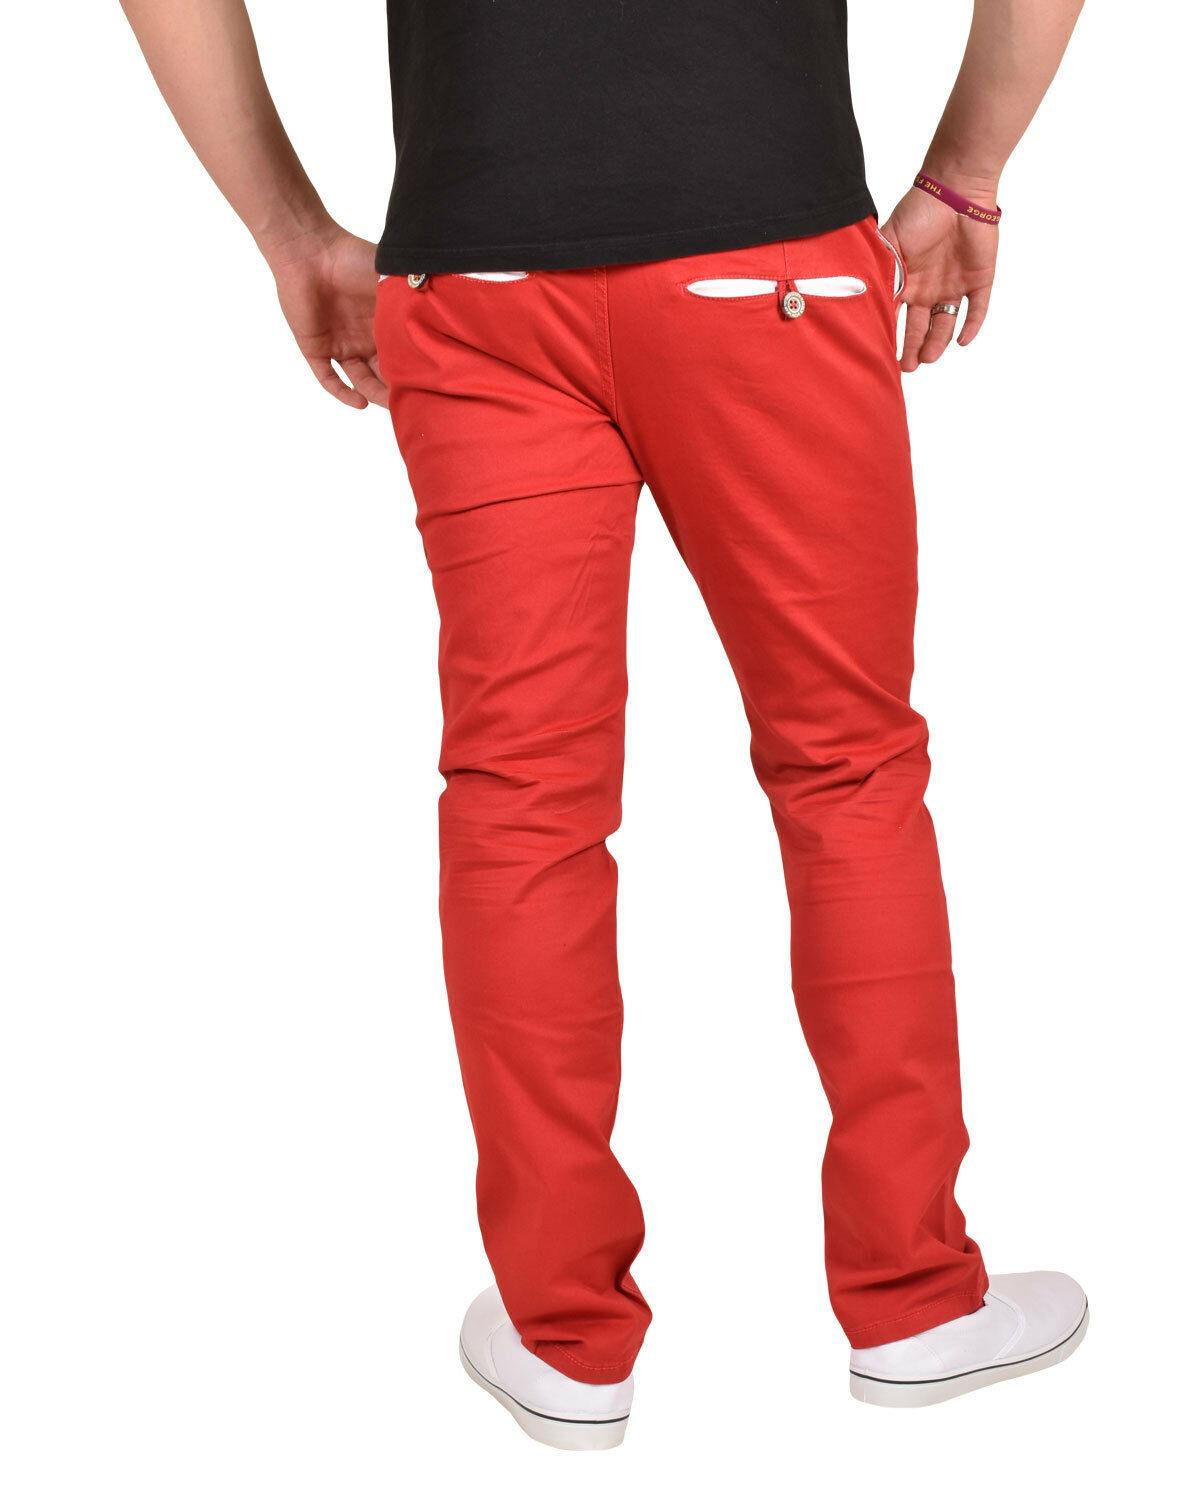 New-Mens-Designer-Jacksouth-Chino-Regular-Fit-Stretch-Cotton-Rich-Twill-Trousers thumbnail 28